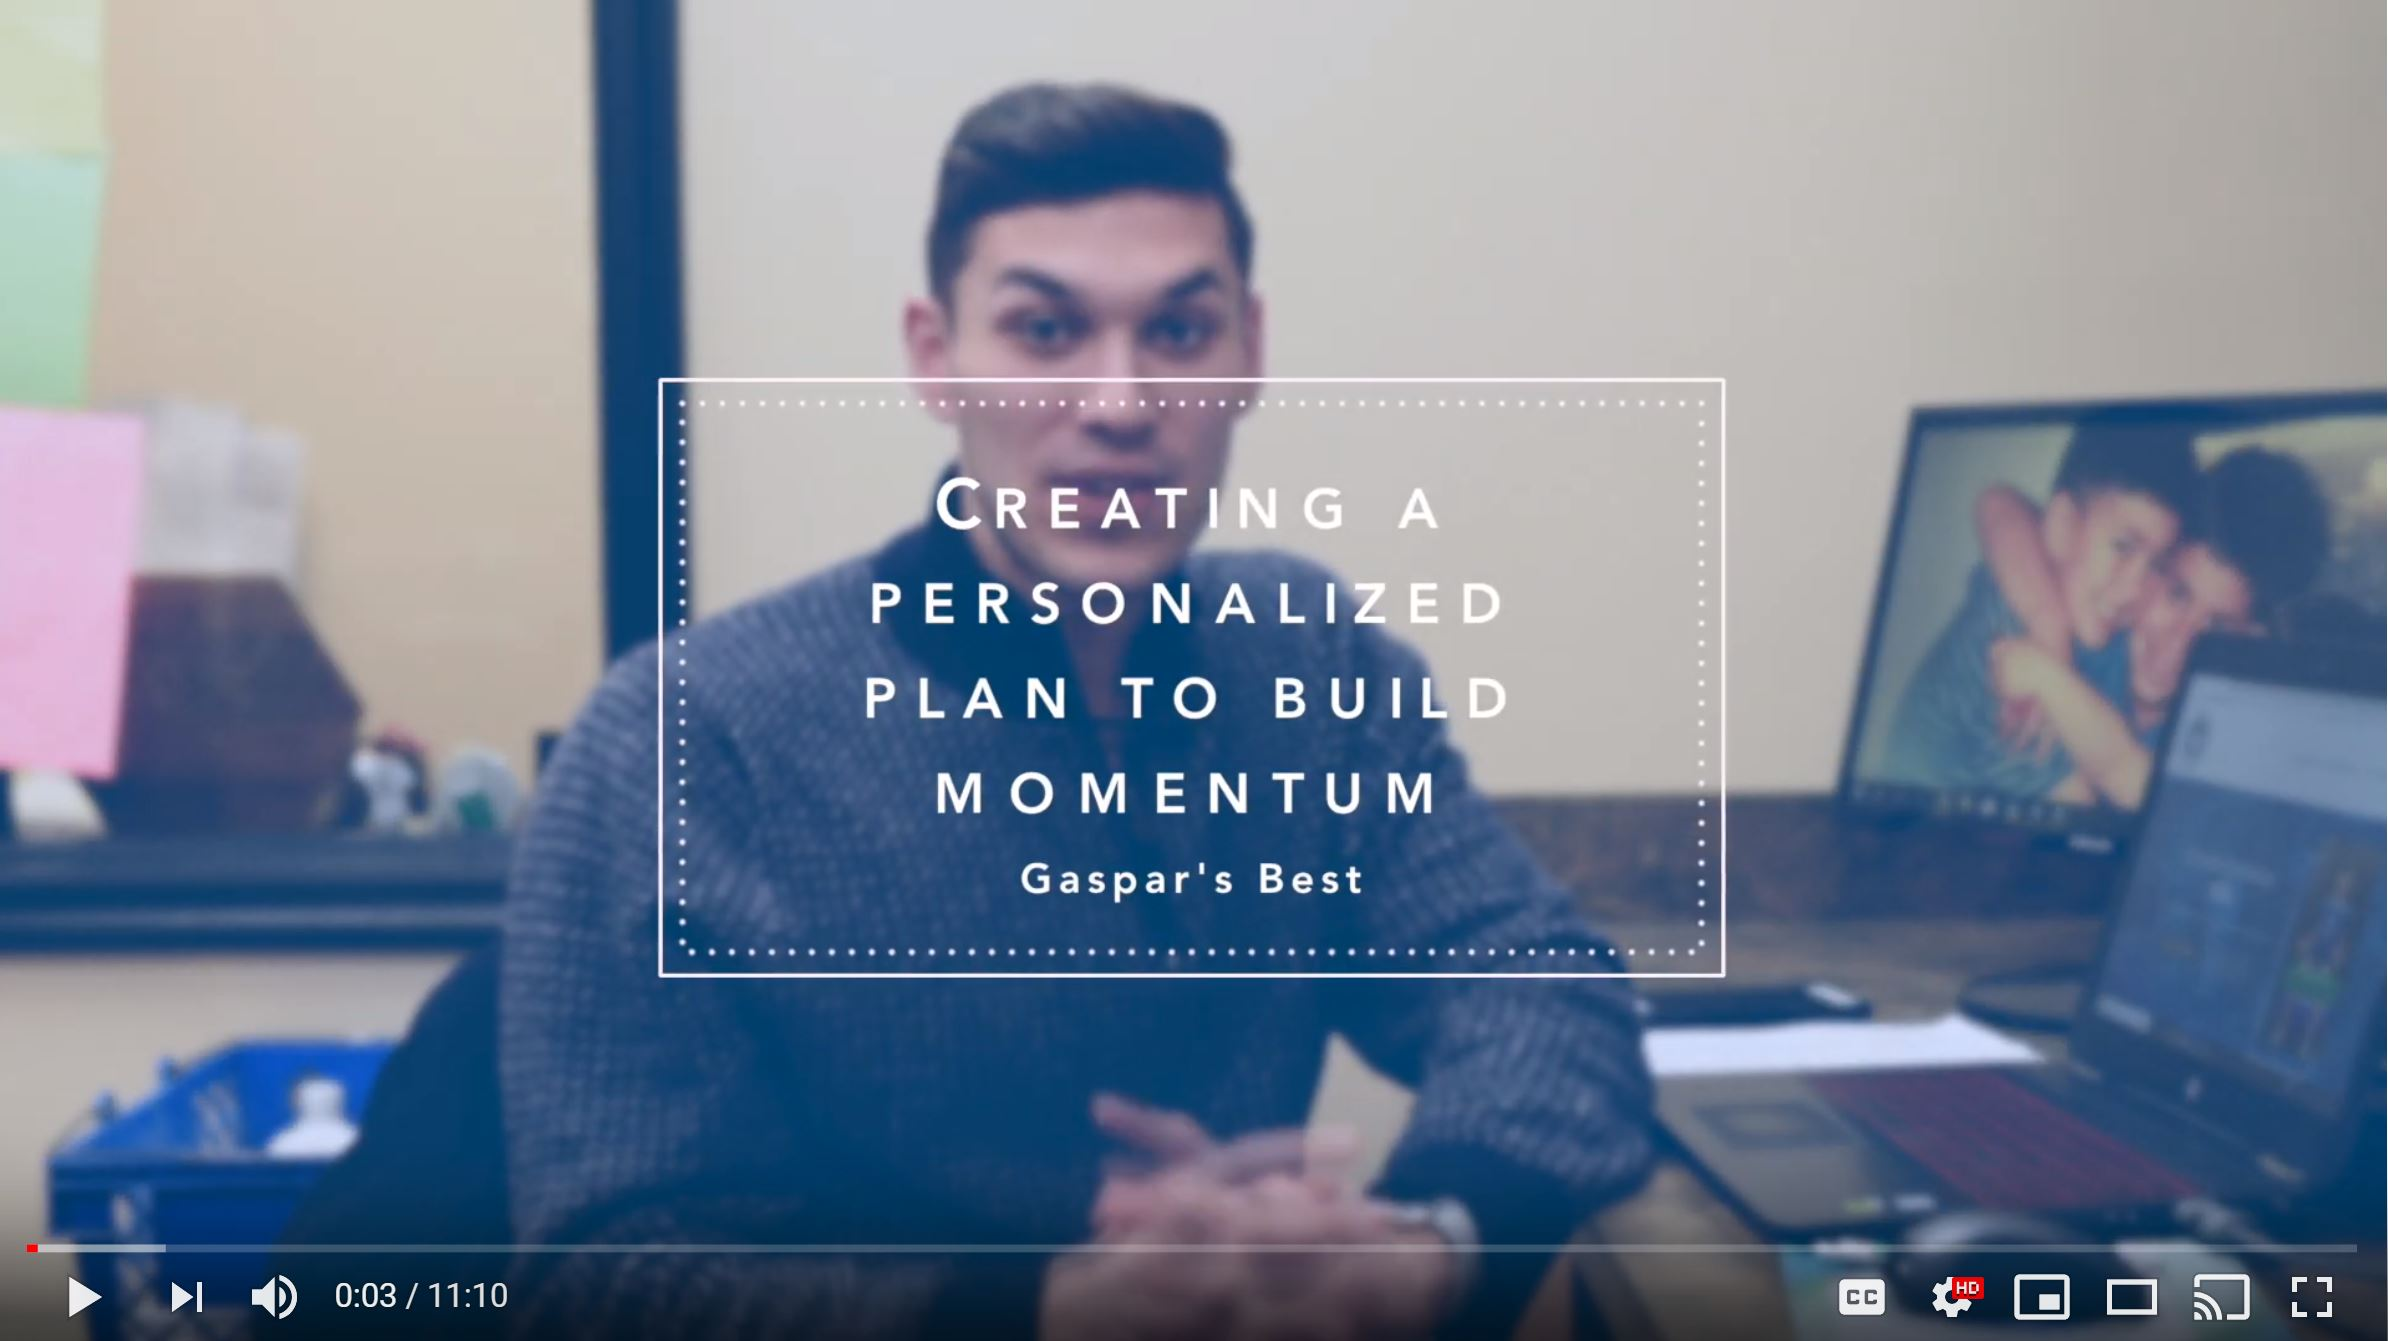 Creating A Personalized Plan To Build Momentum